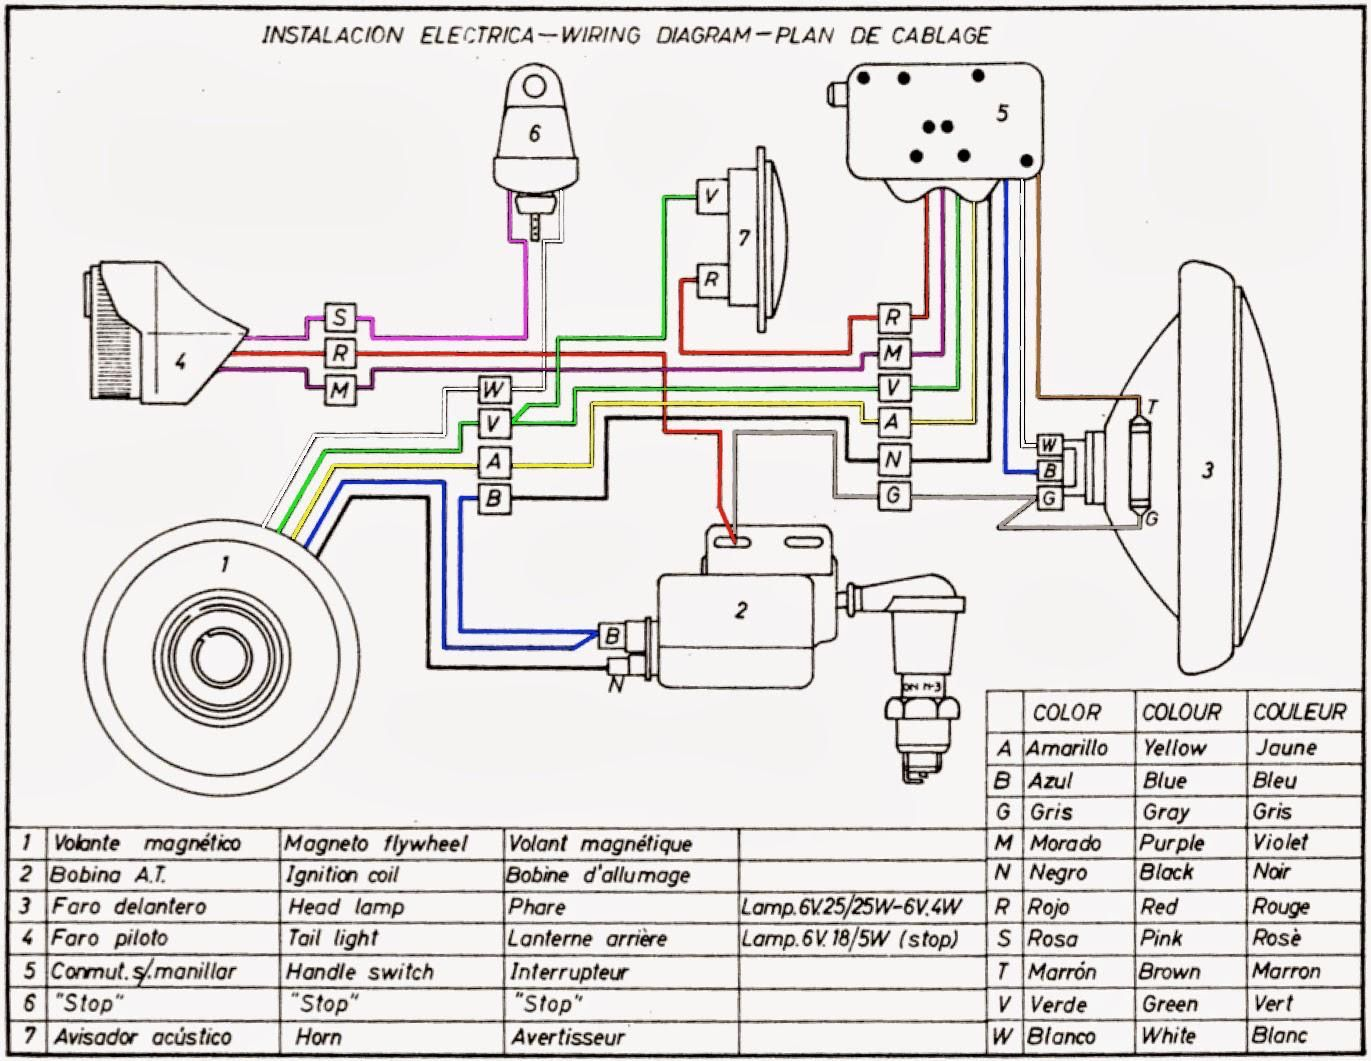 Spanish Wiring Diagrams Bultaco Diagram Bikes Pinterest Bike Y Spanishbultaco 9